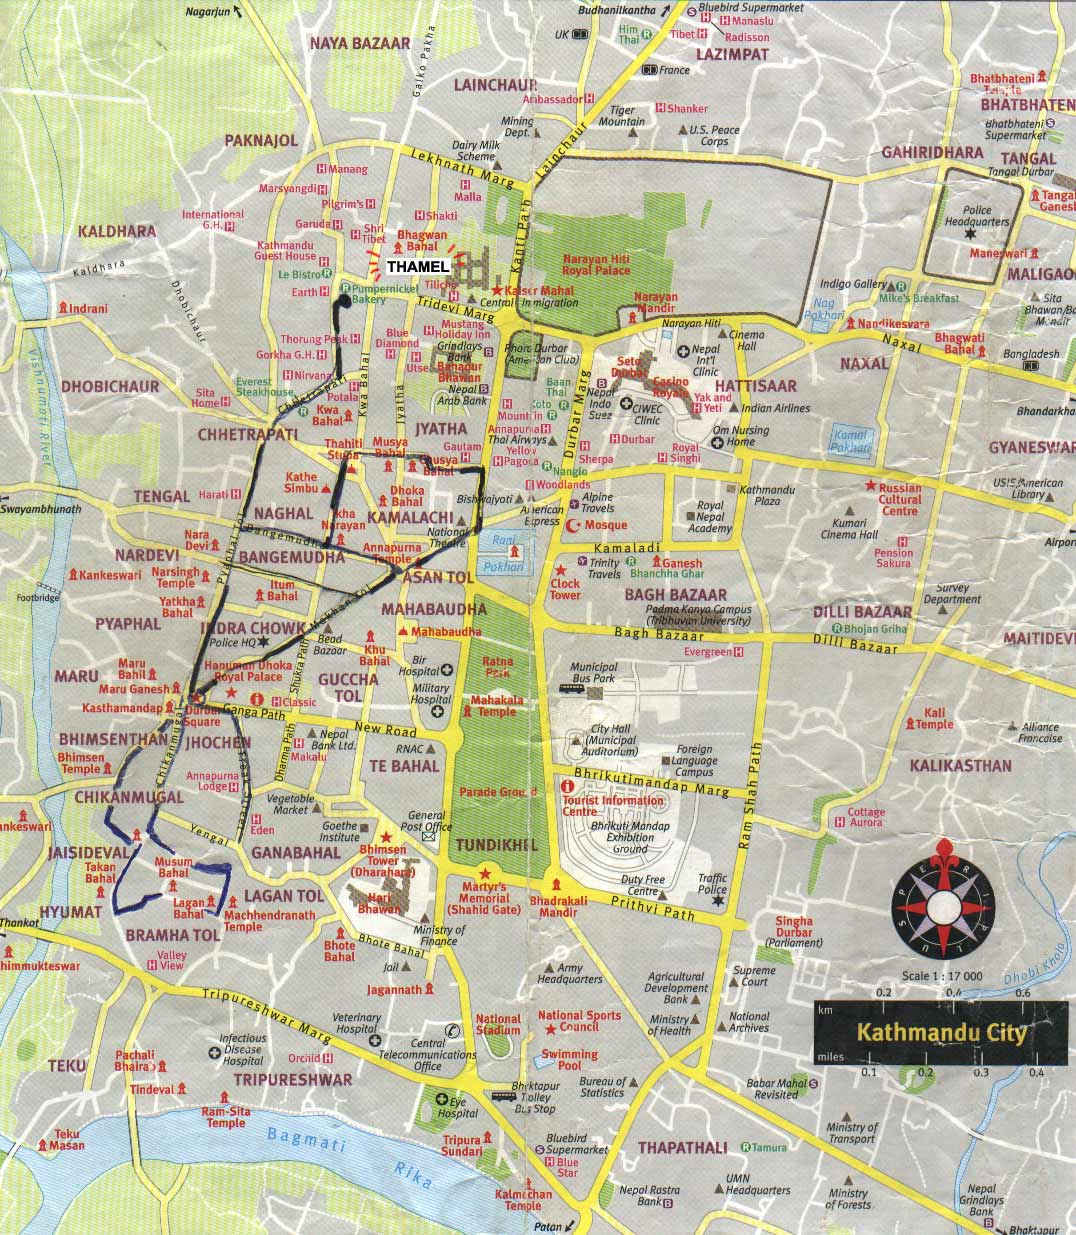 Kathmandu city tourist map see map details from travelportal info